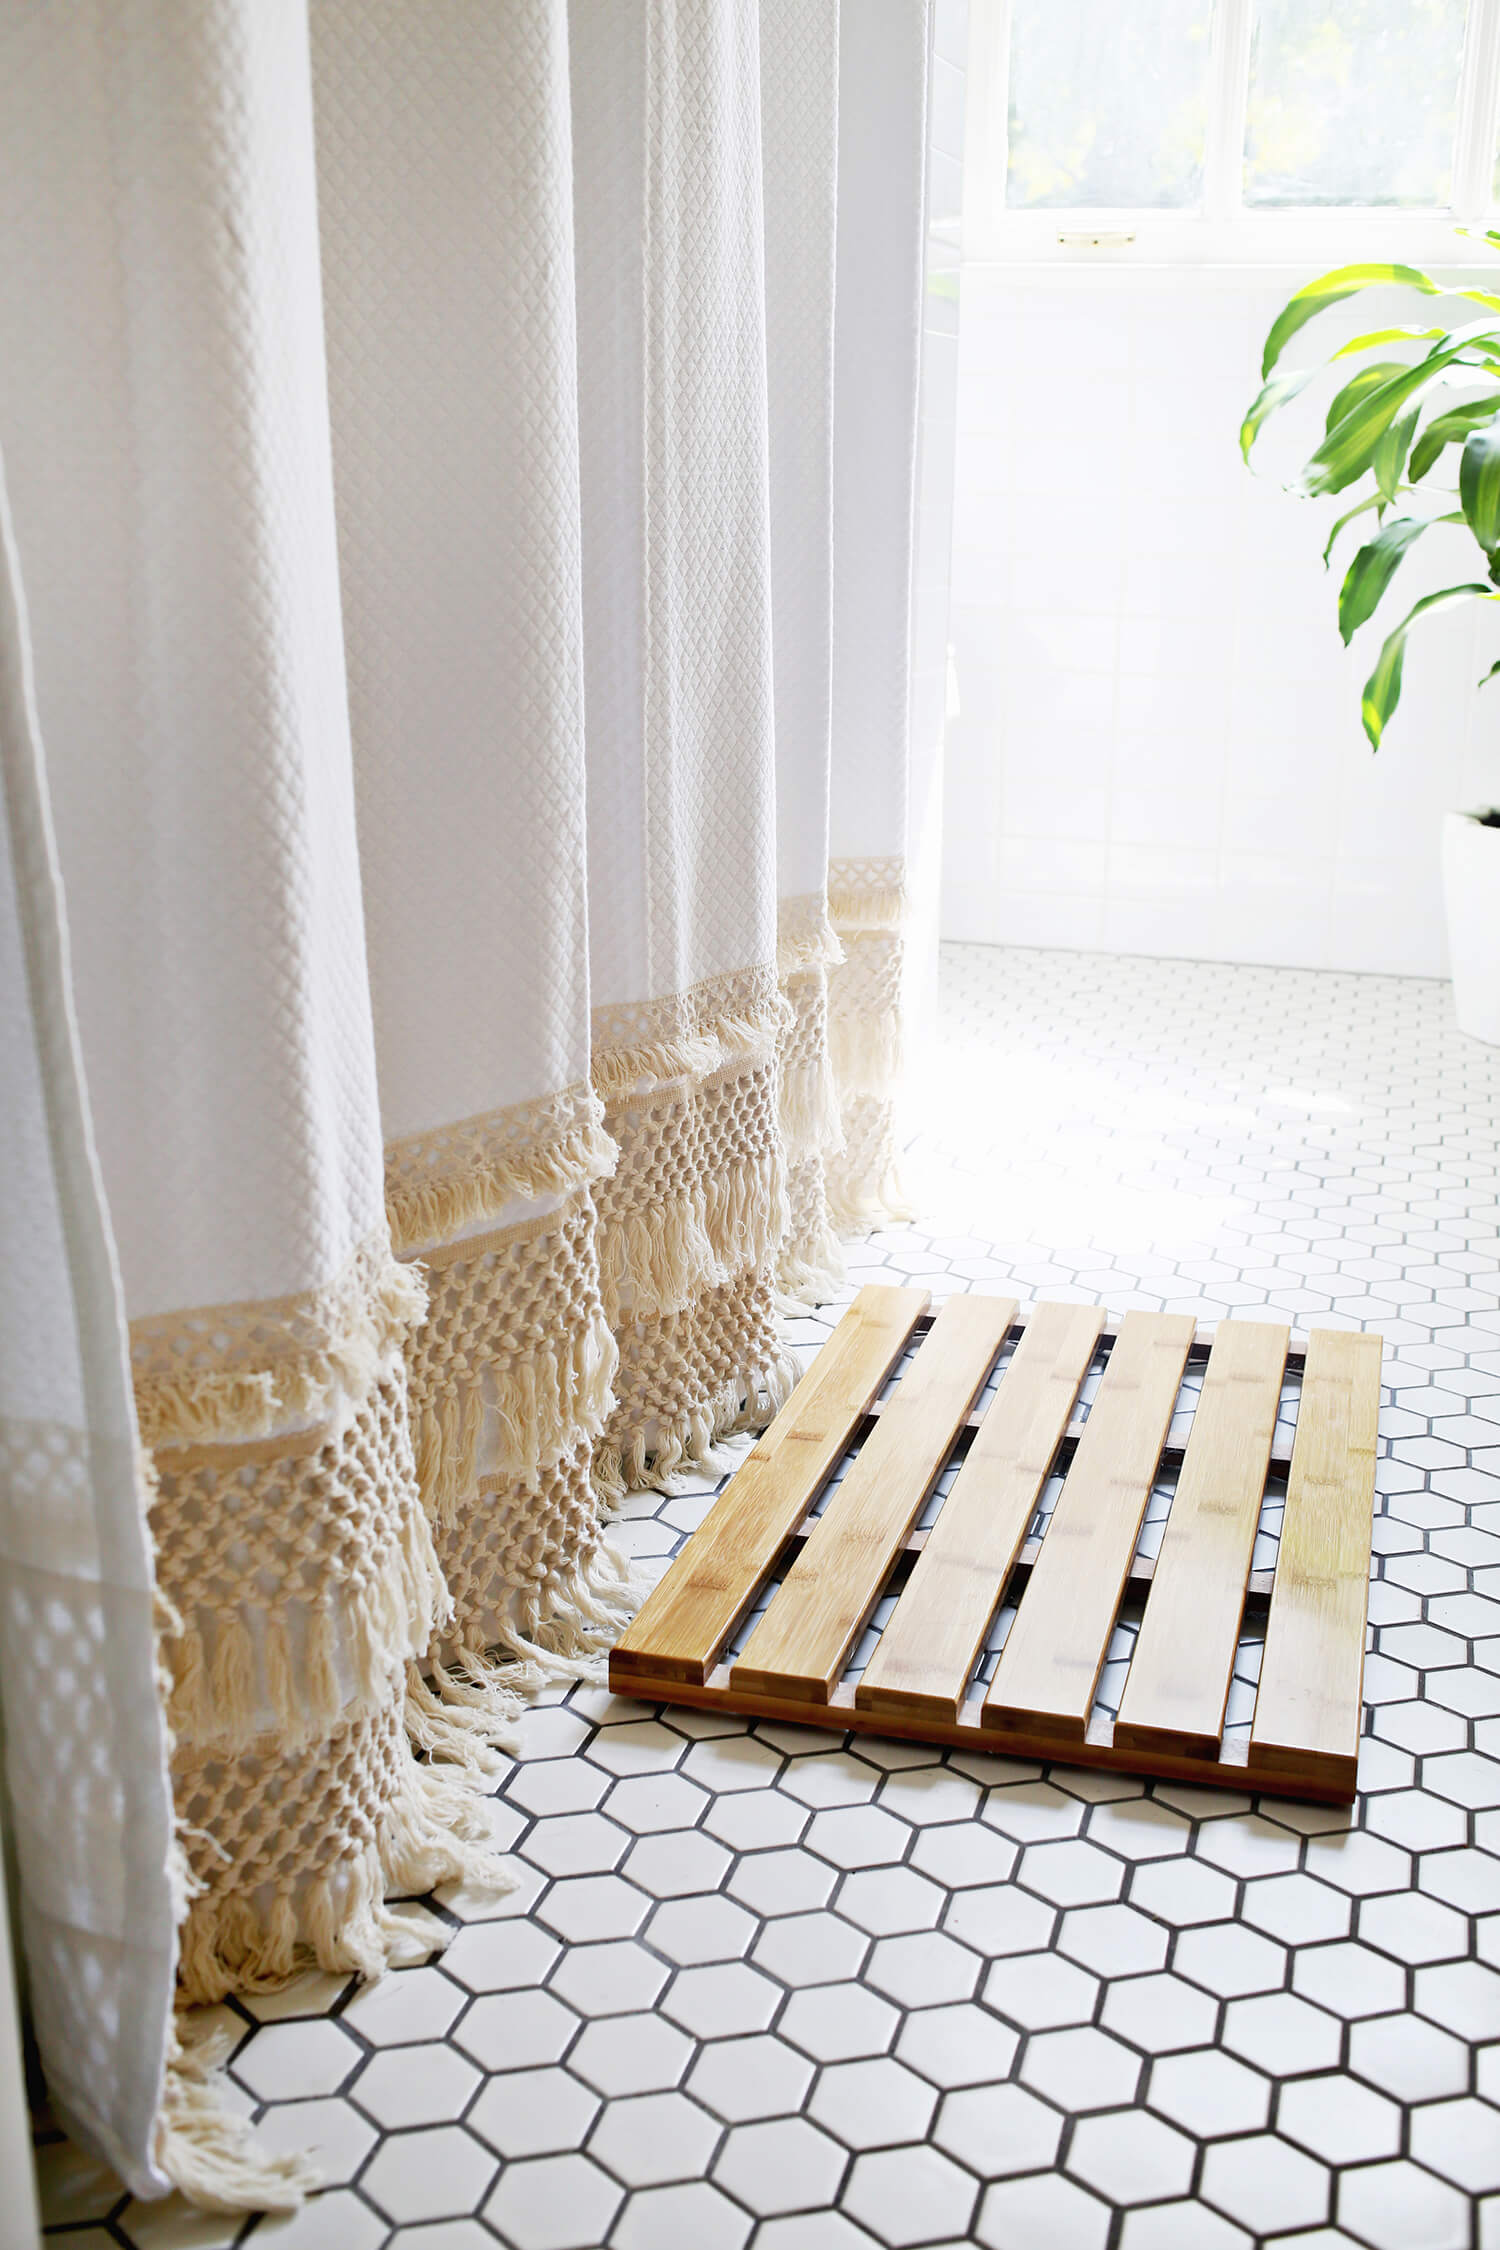 Macrame shower curtain - simple ways to style a bathroom - That Homebird Life Blog